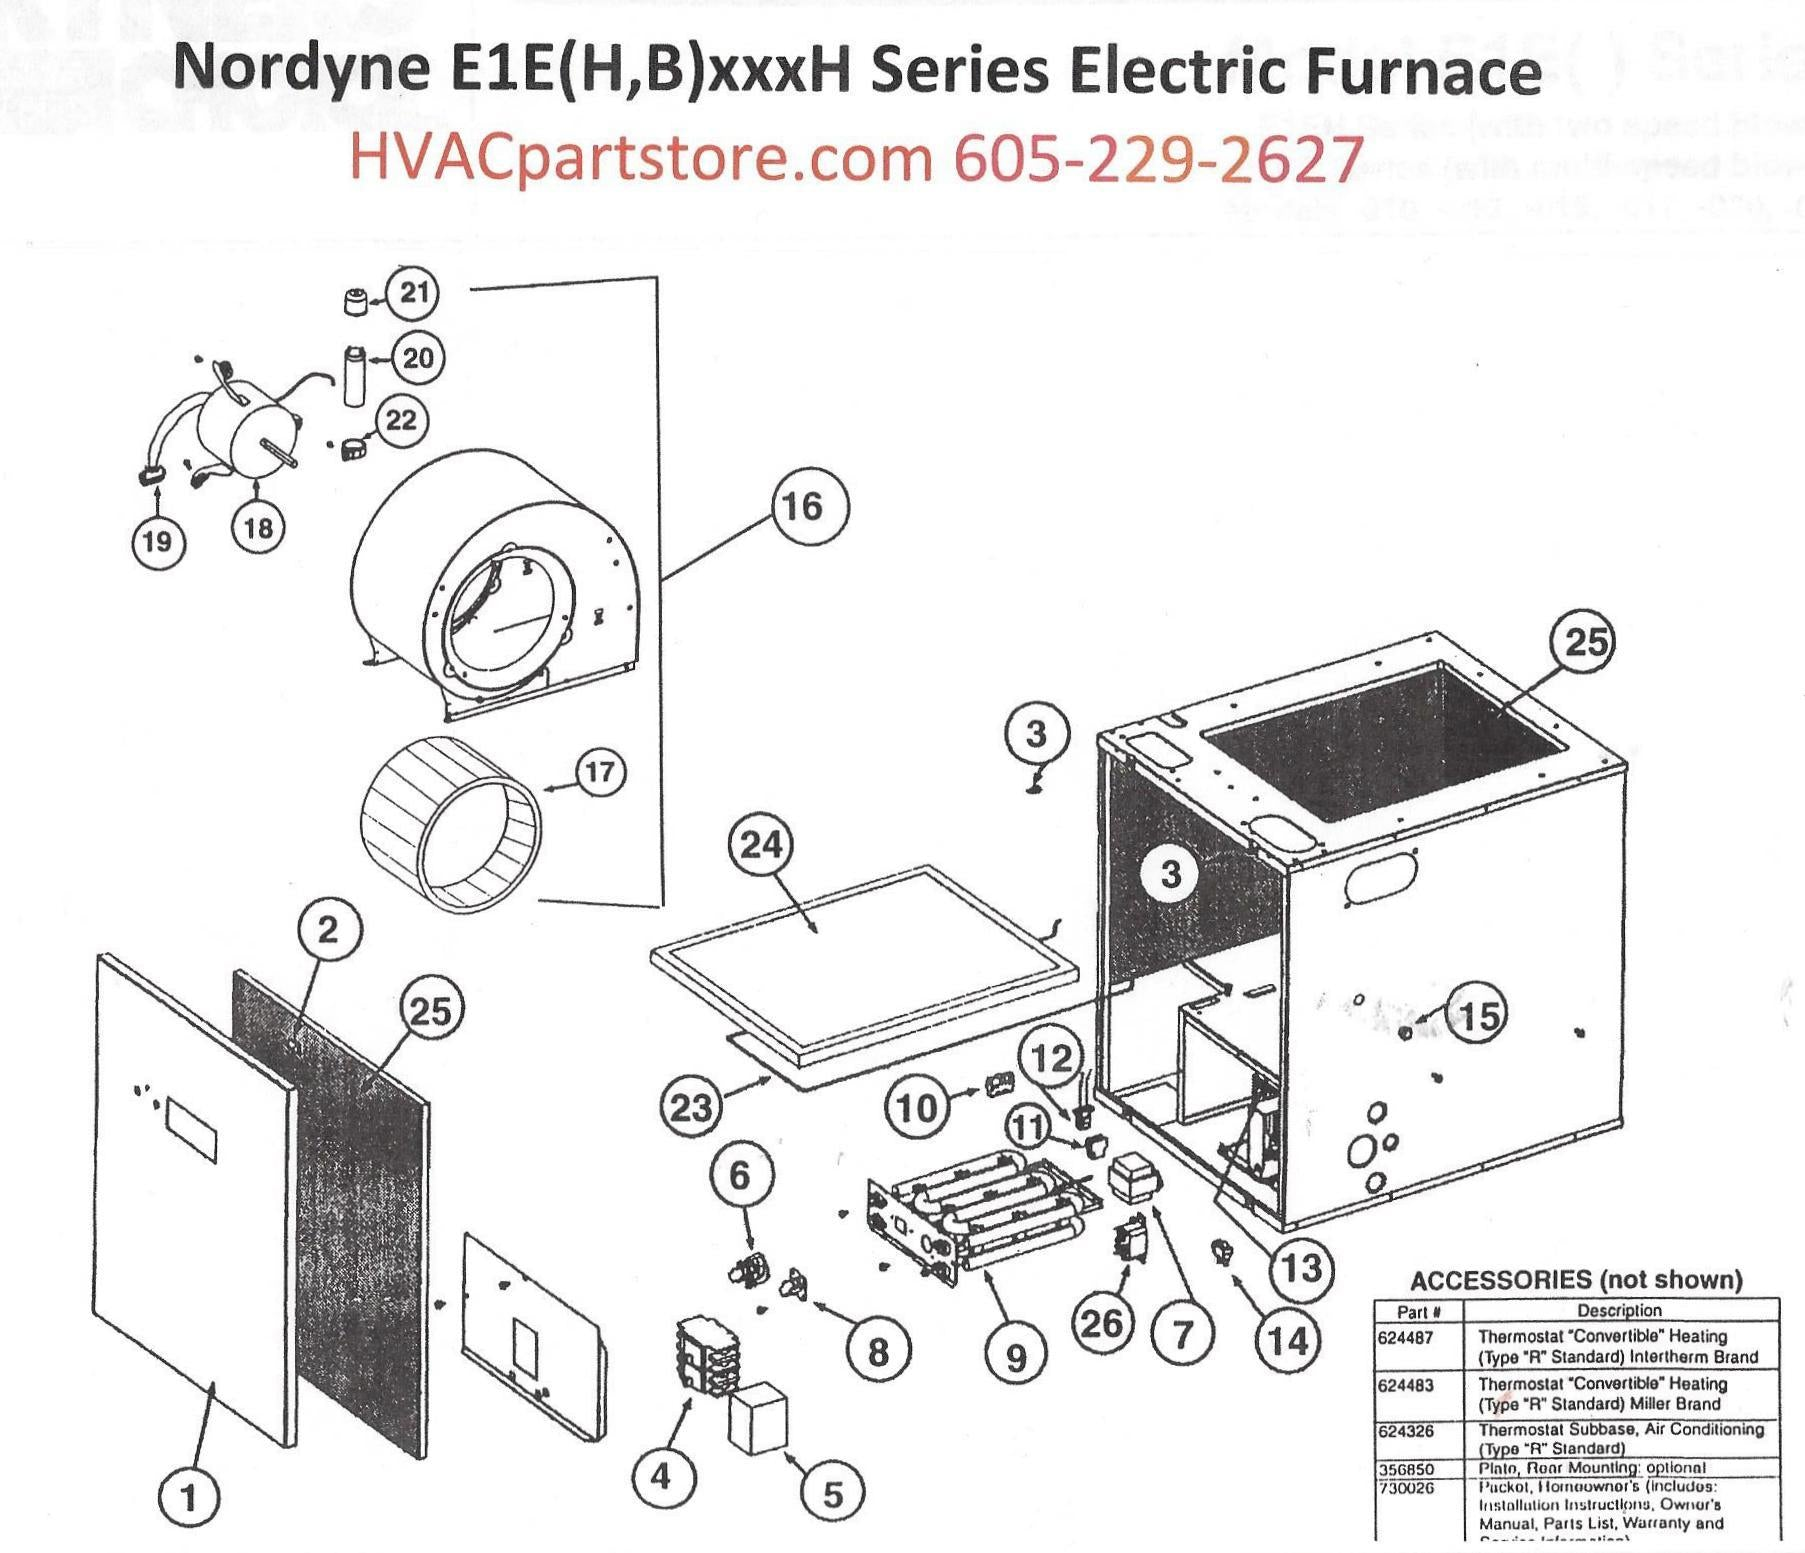 E1EH017H Nordyne Electric Furnace Parts